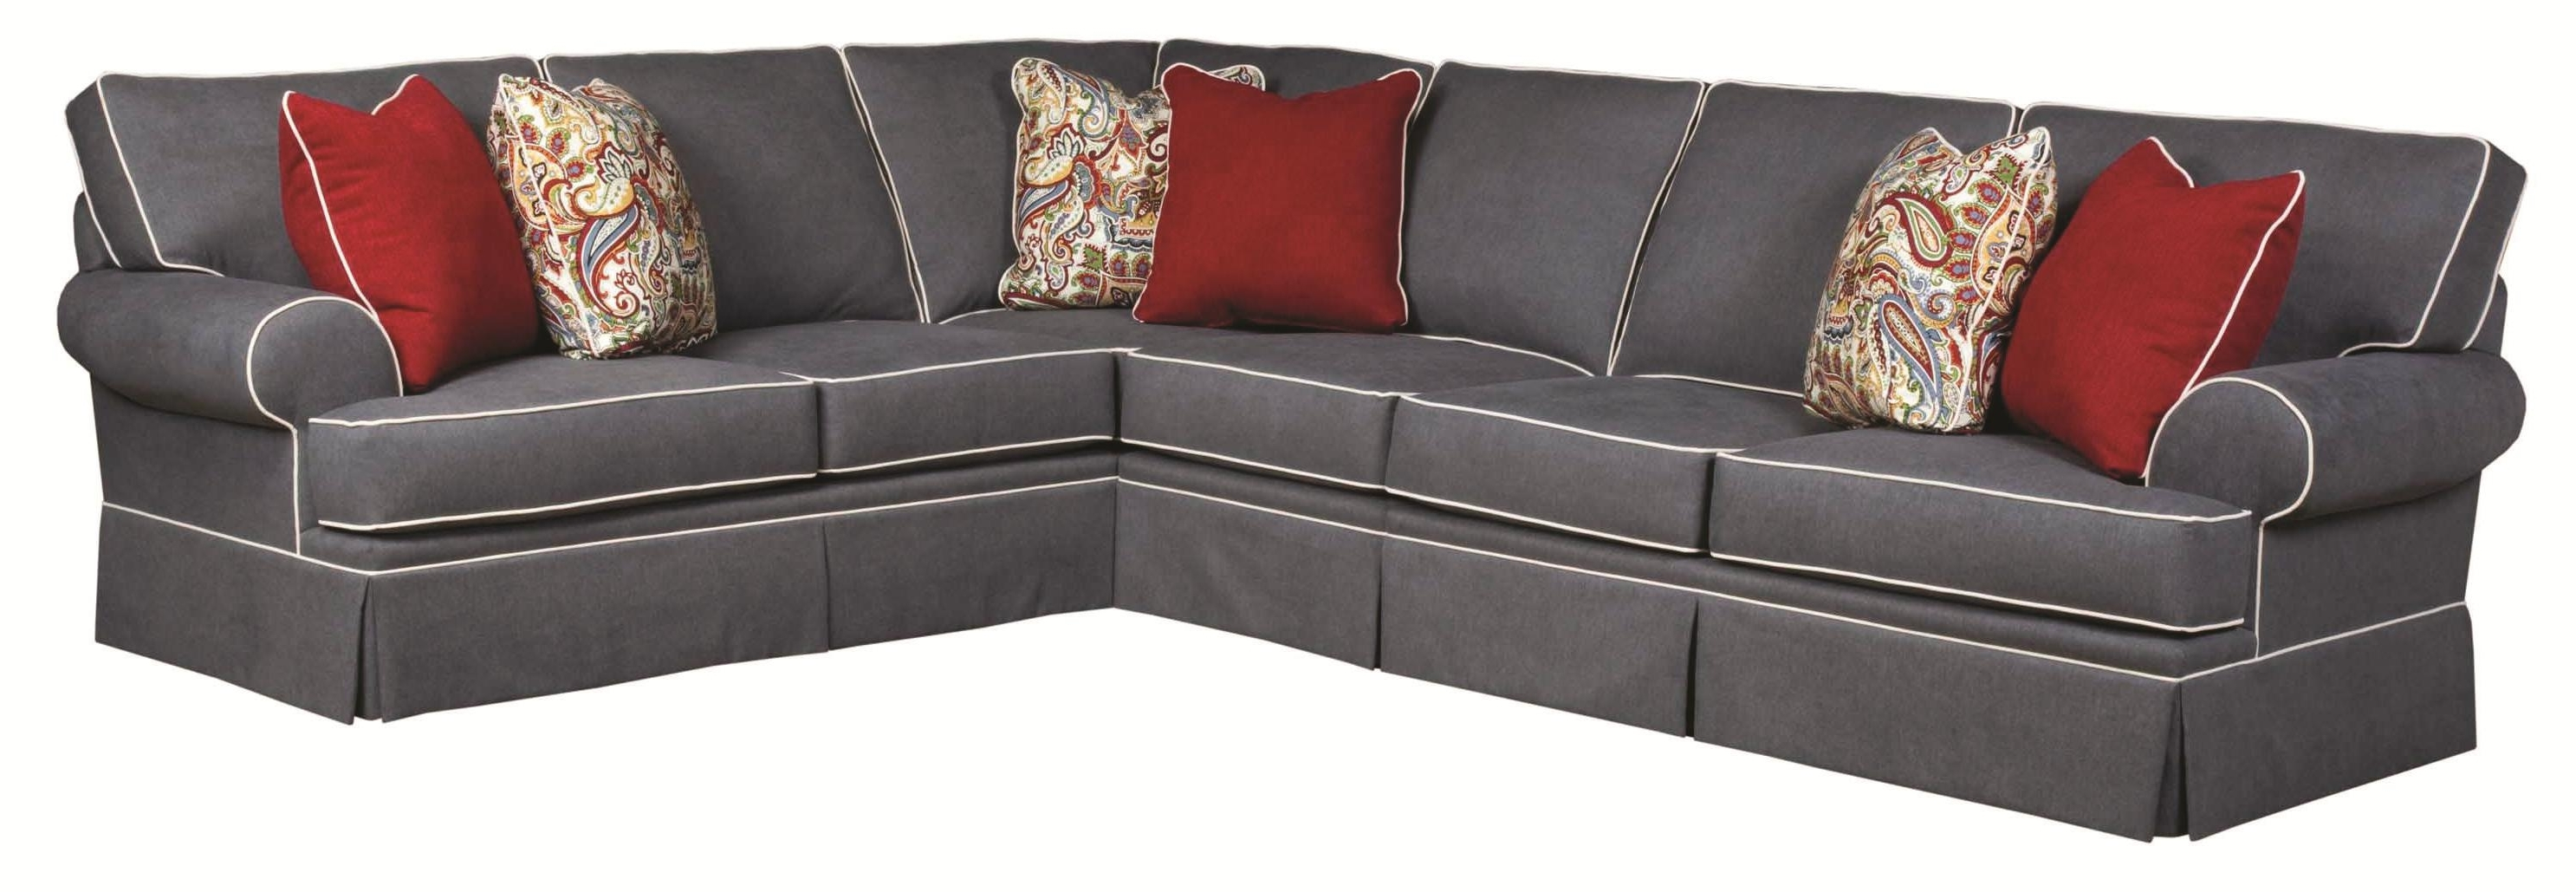 Newest Sectional Sofas At Broyhill Intended For Broyhill Furniture Emily Traditional 3 Piece Sectional Sofa With (View 4 of 15)